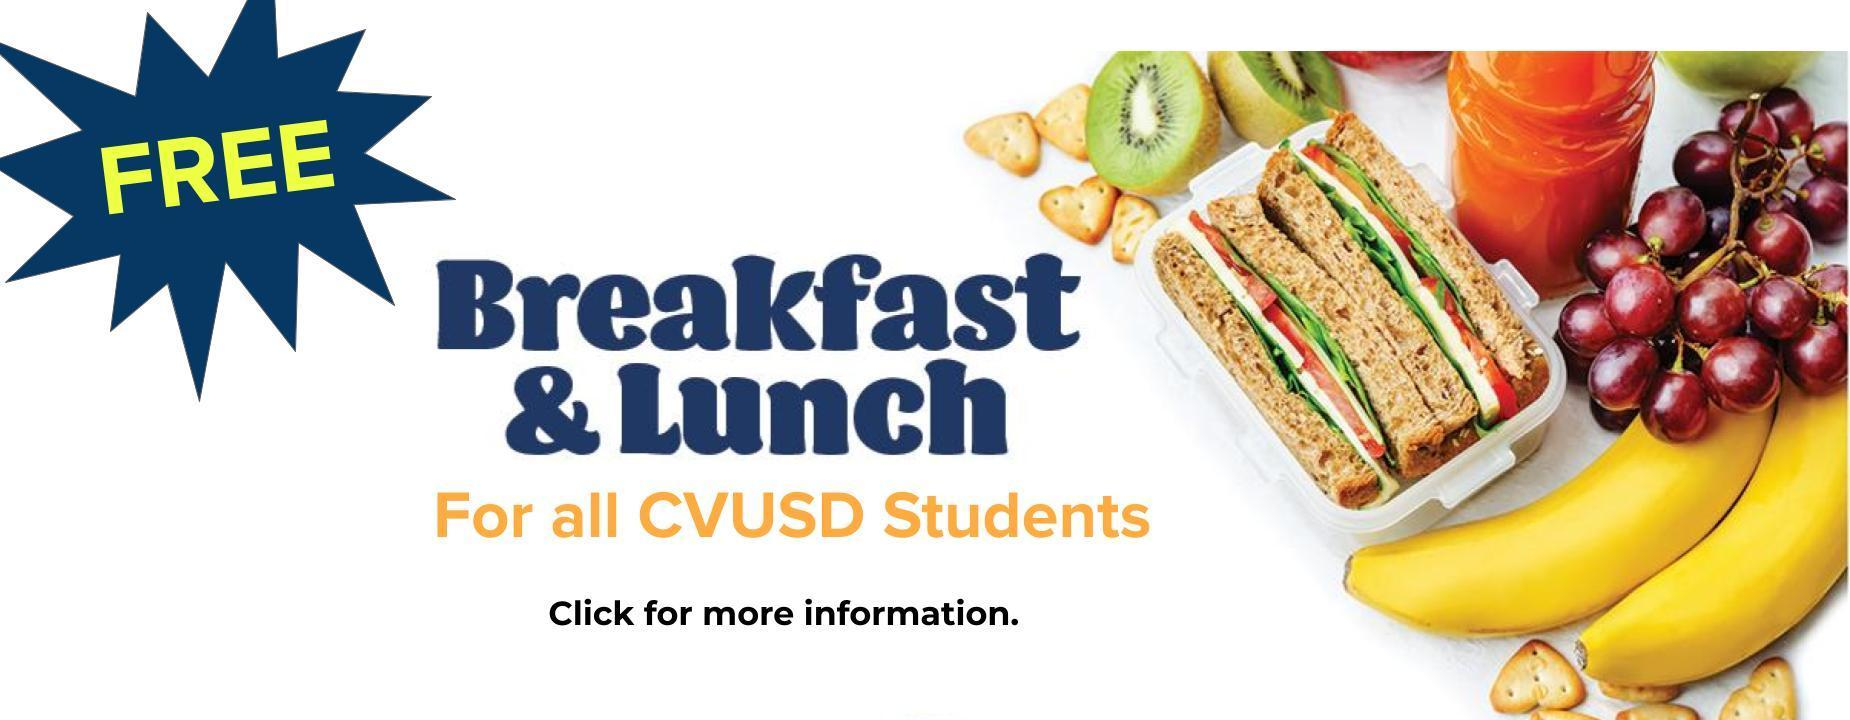 Free lunch for cvusd students